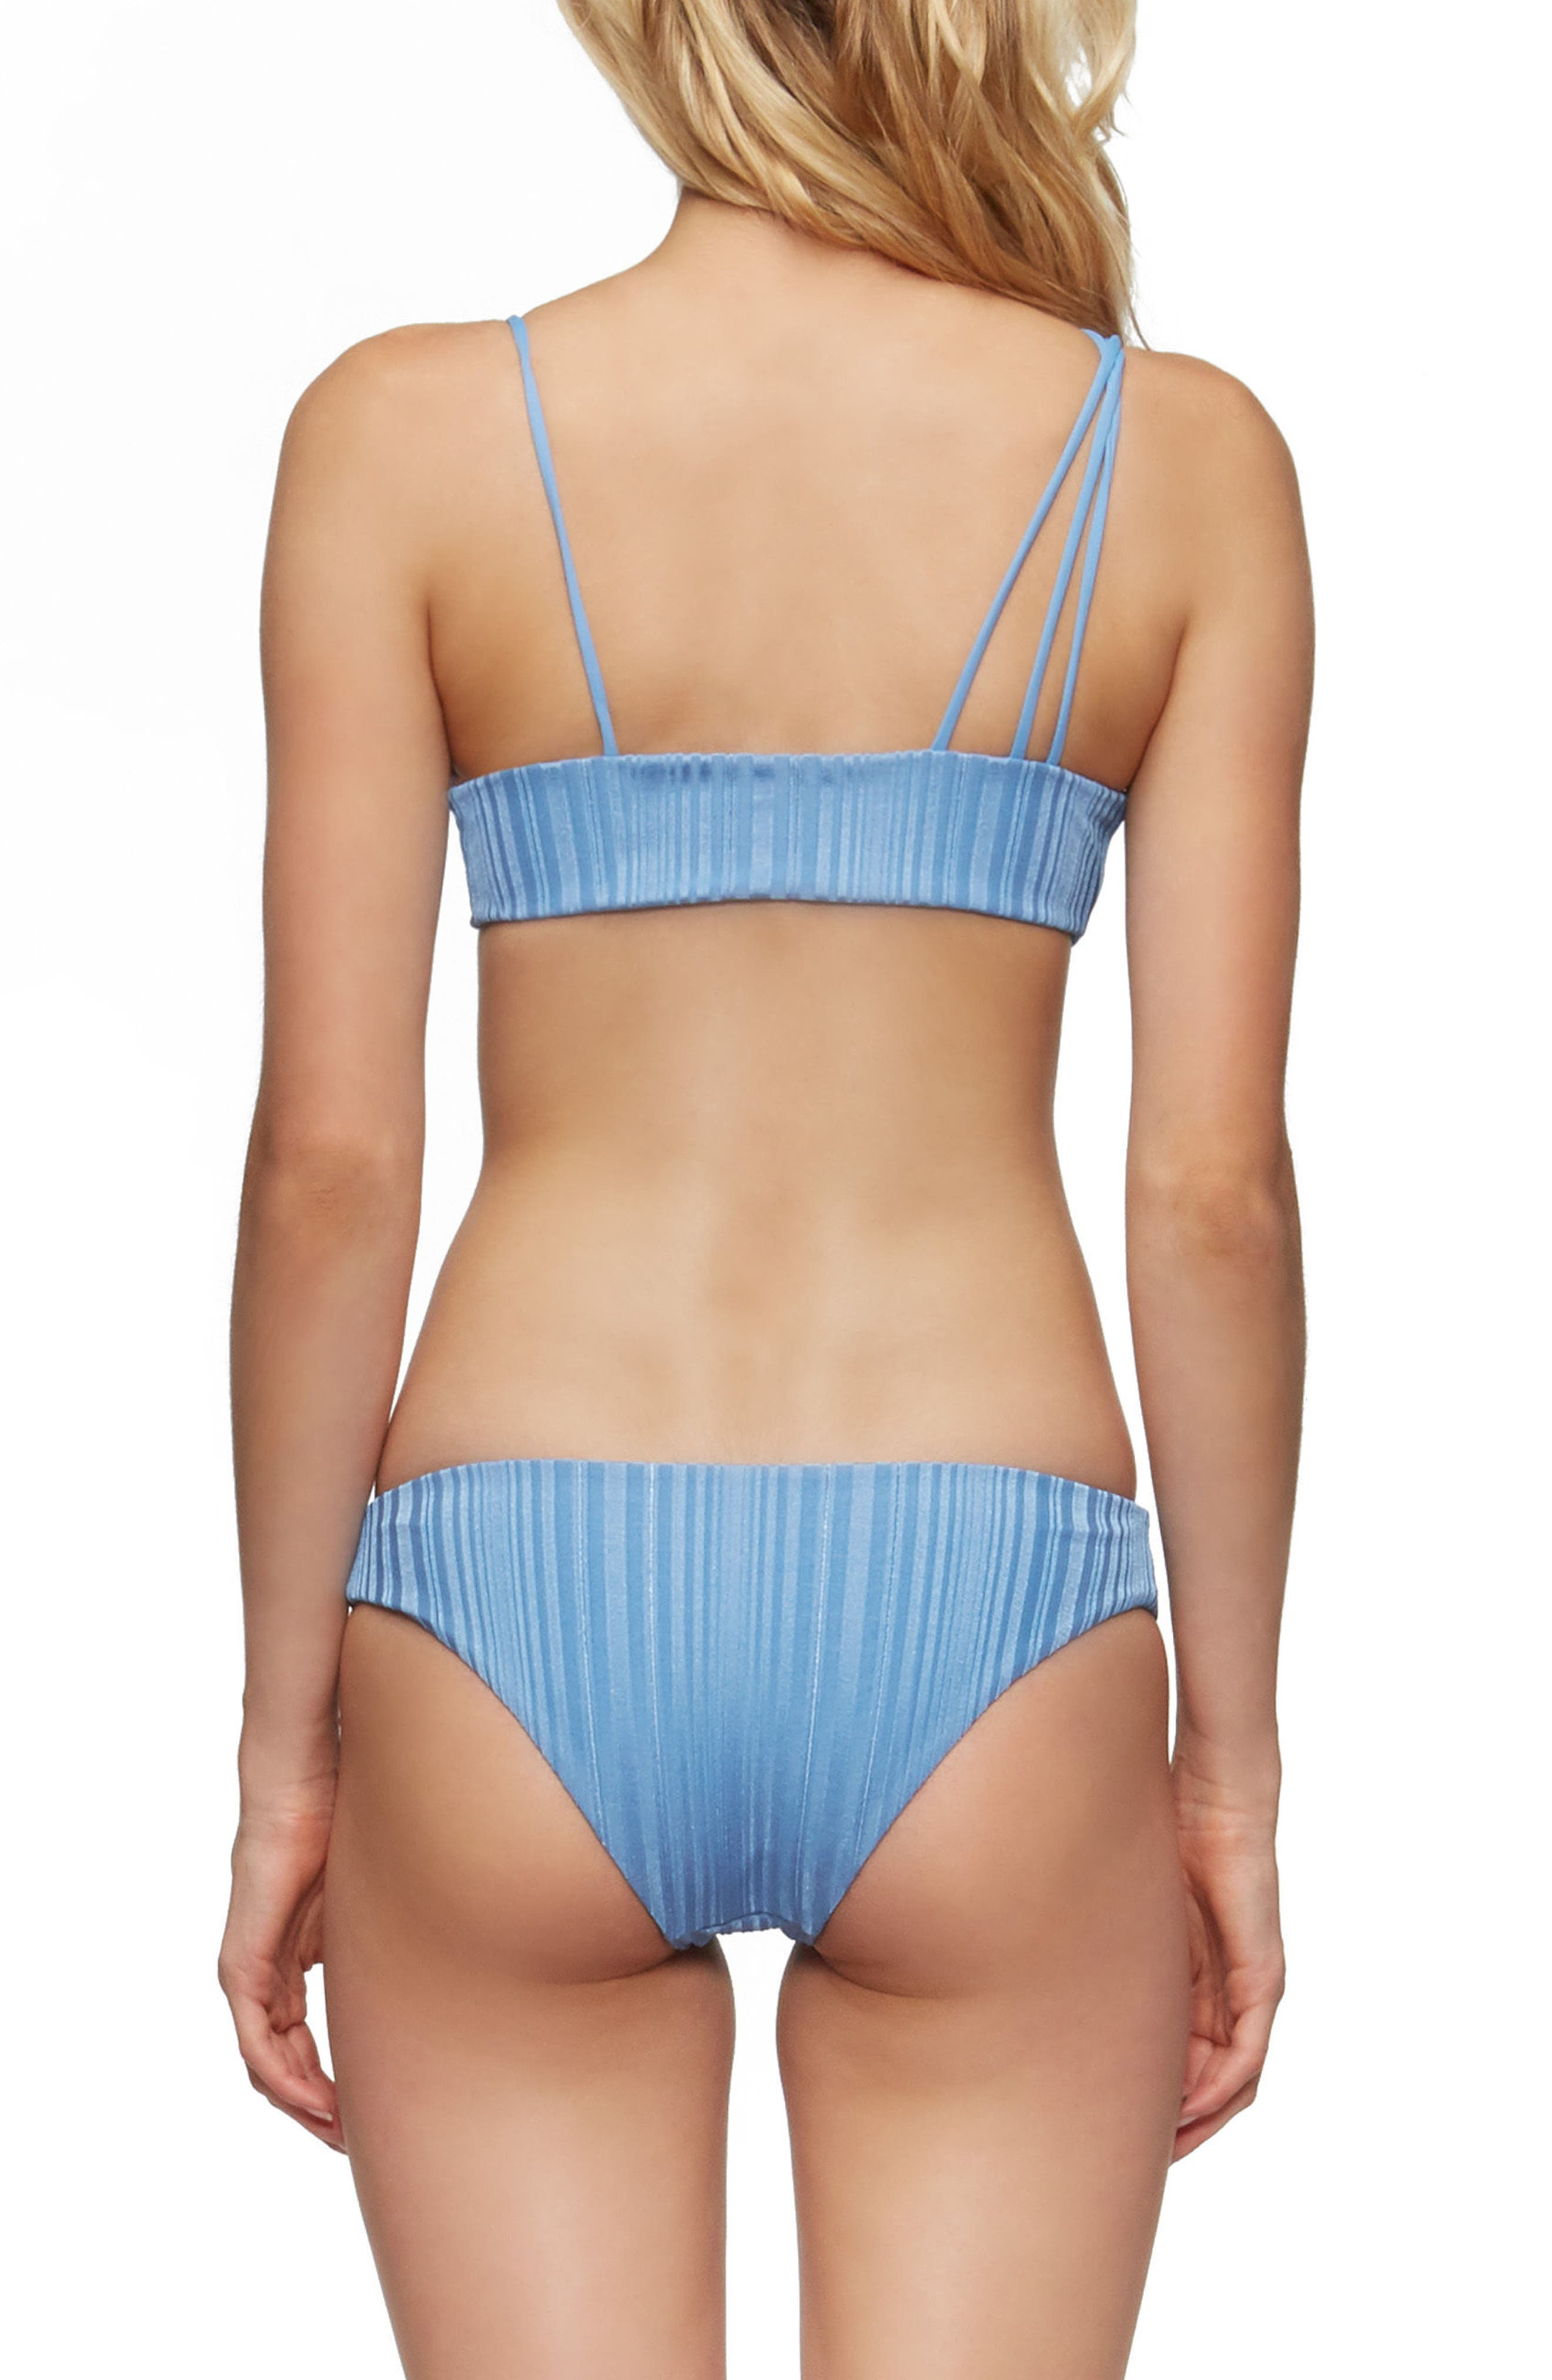 Leni Bikini Top,                             Alternate thumbnail 6, color,                             SEA BLUE